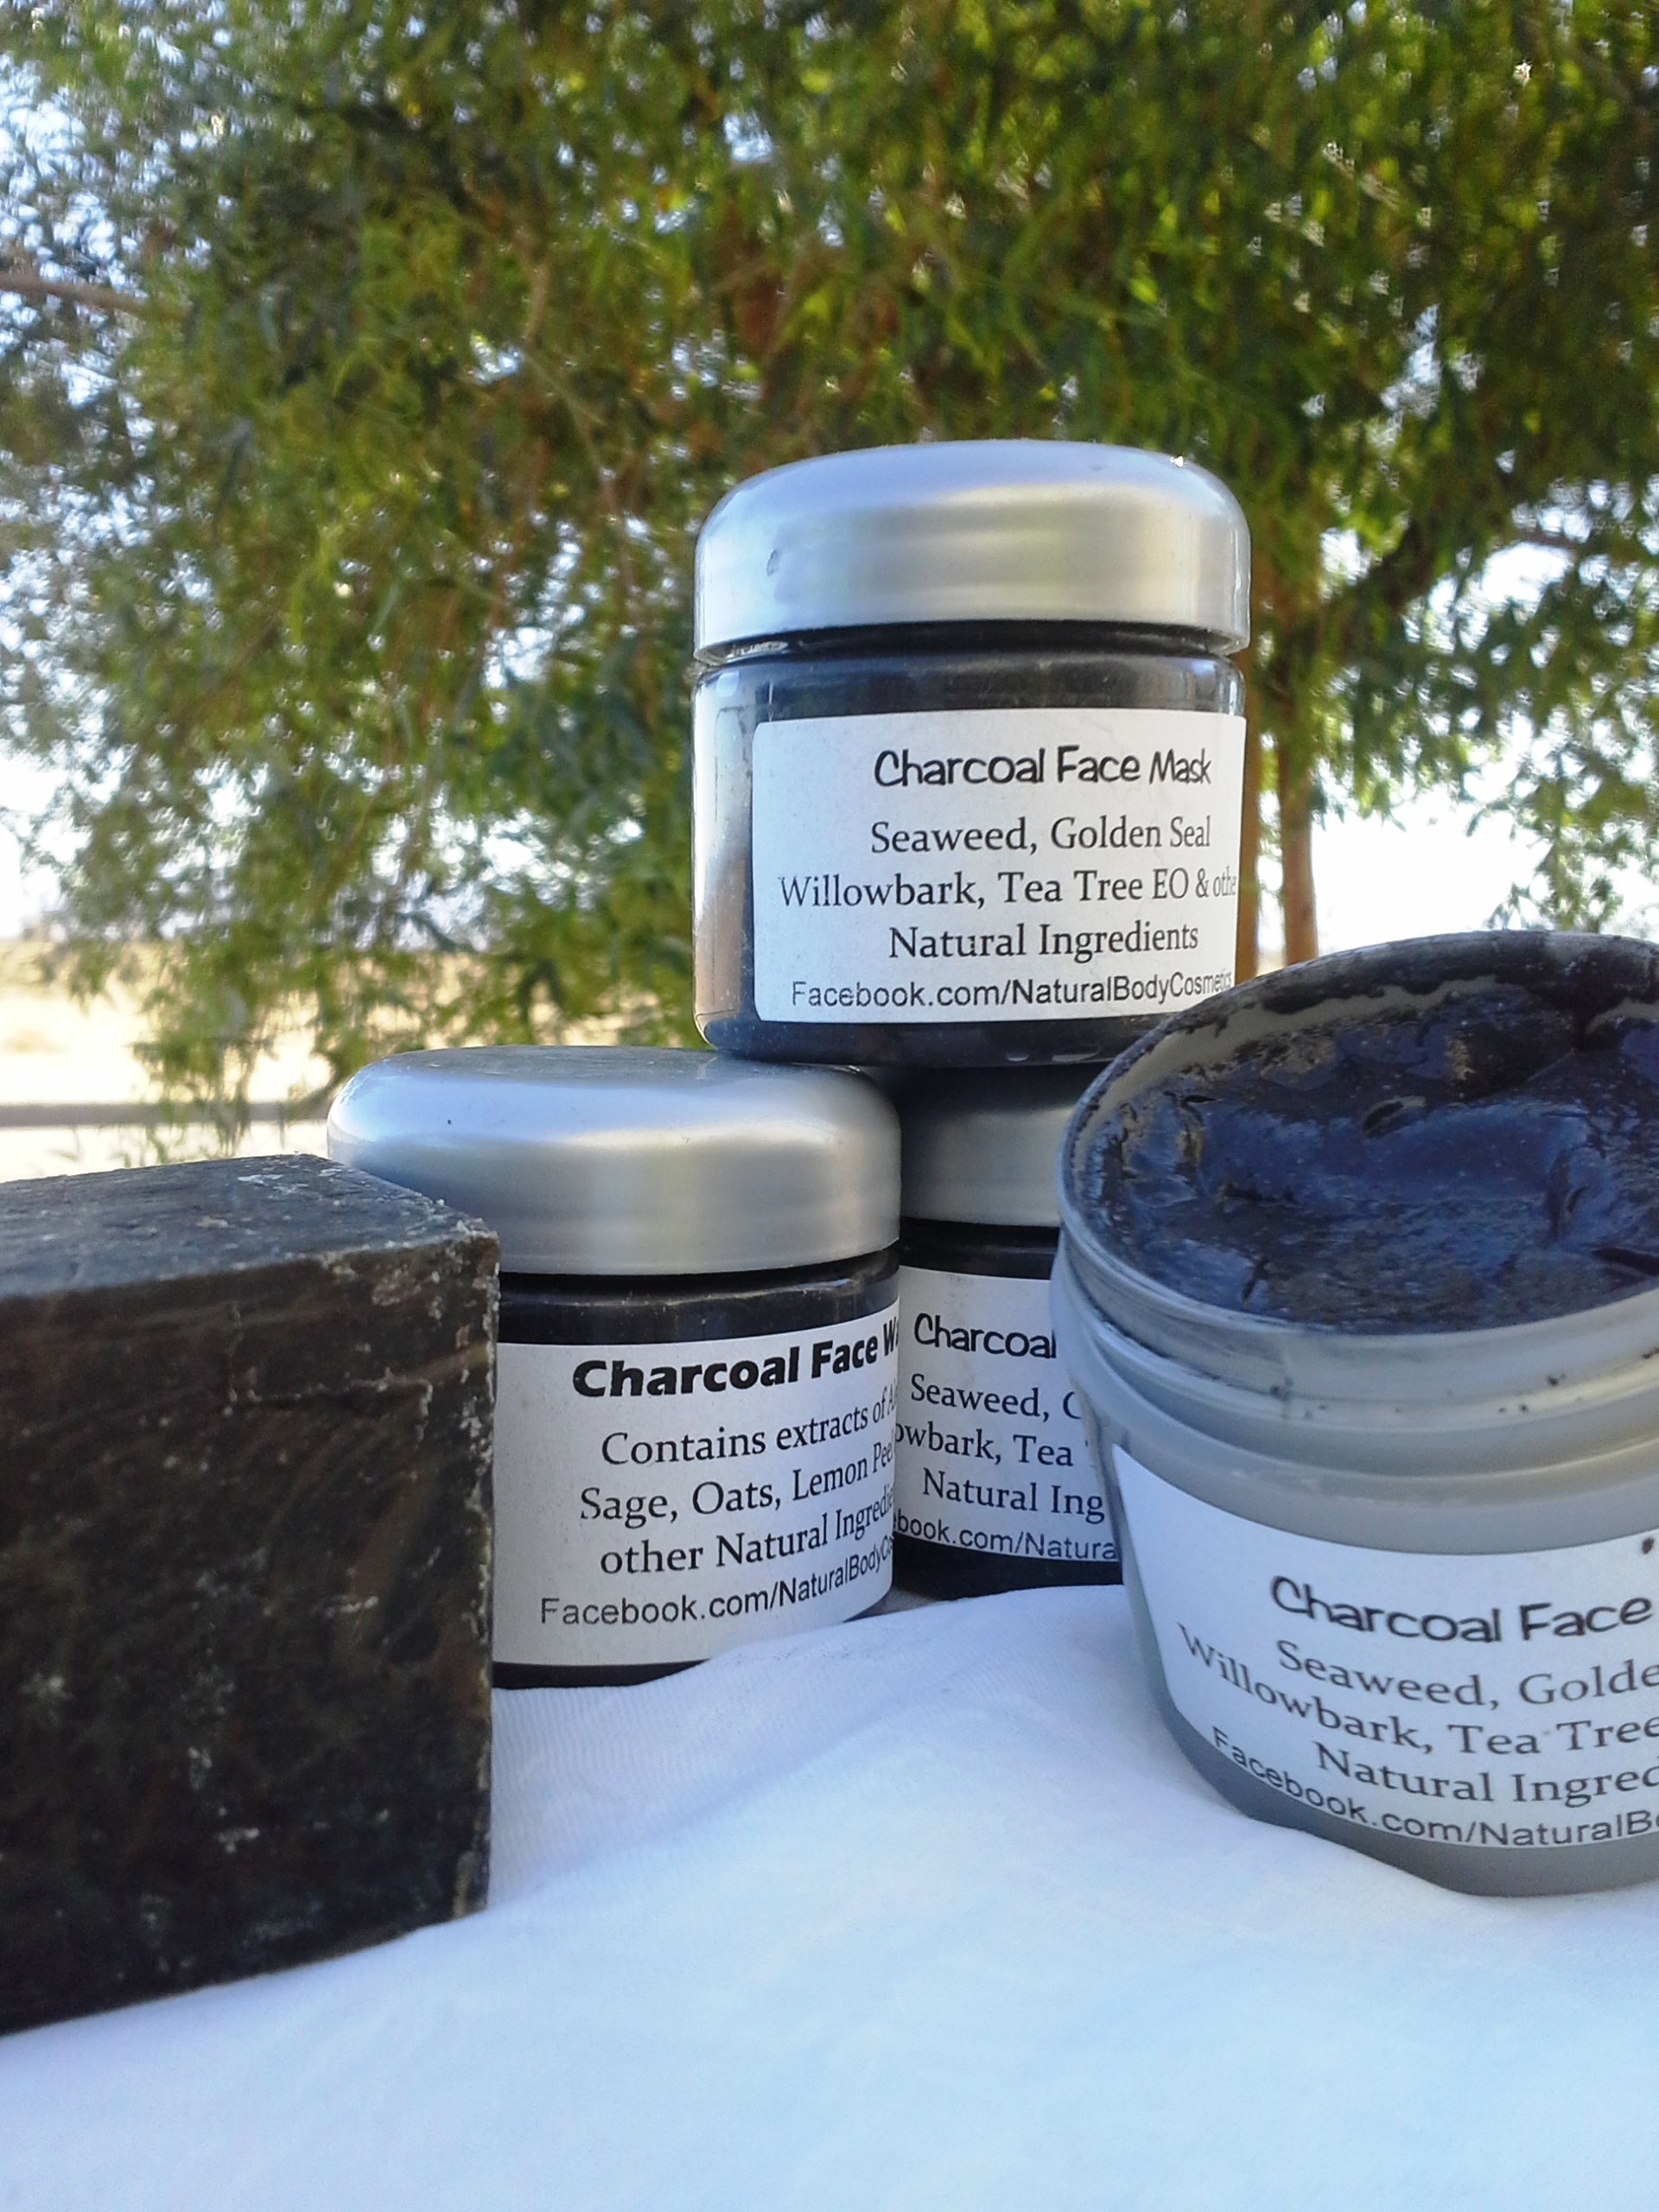 Peace of Mind — Charcoal Face Mask